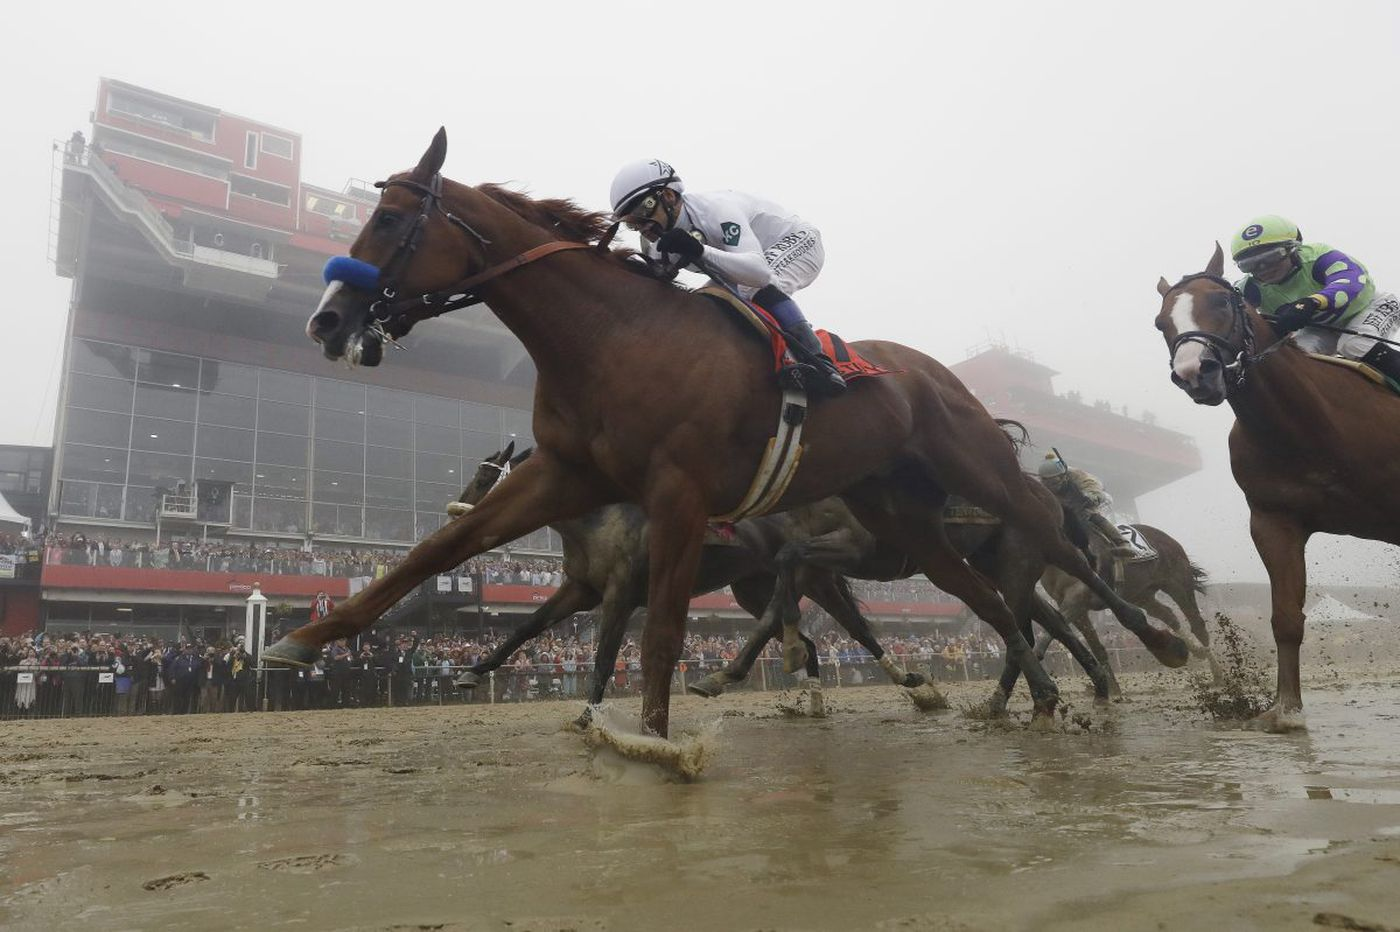 After Preakness, will Justify be at his best for Triple Crown bid?   Dick Jerardi